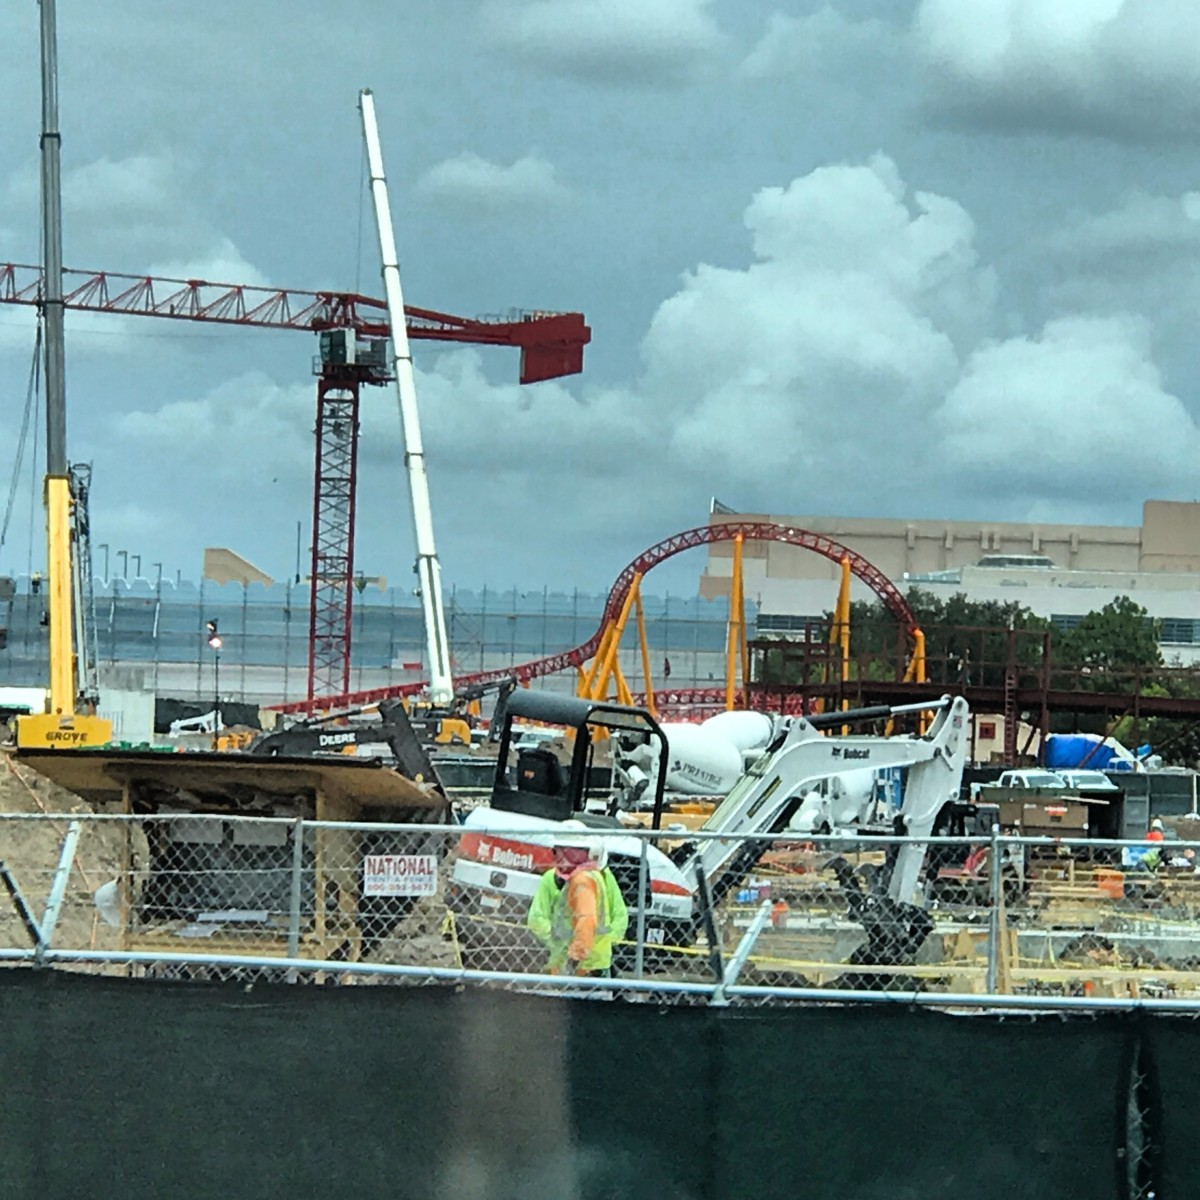 Photos of Construction at Disney's Hollywood Studios 2